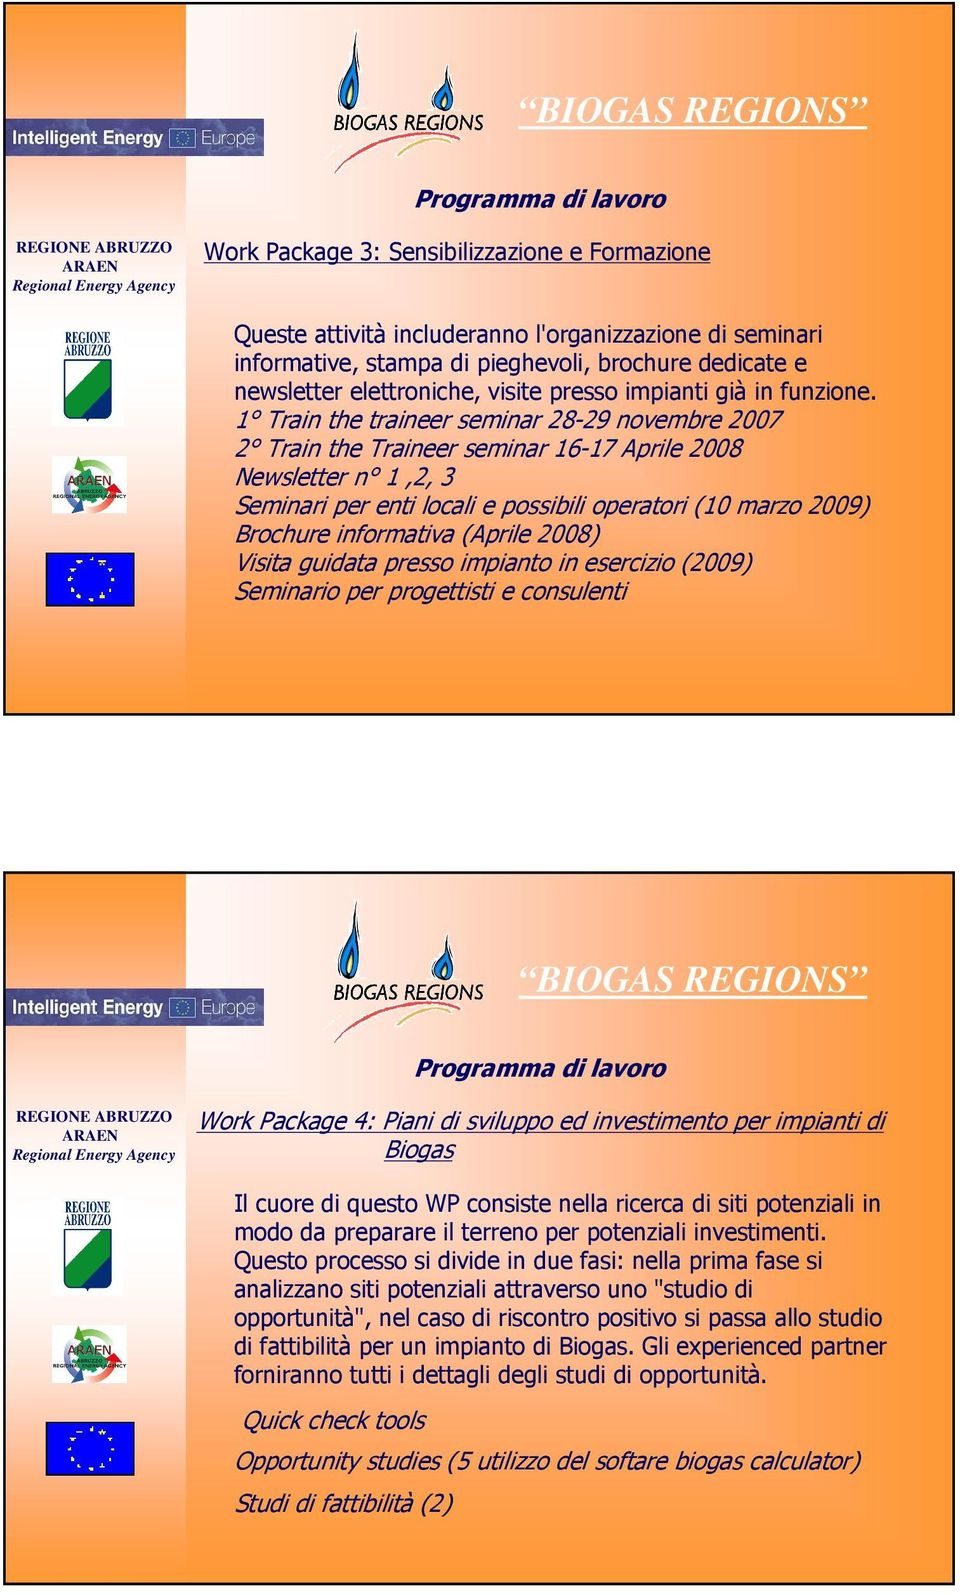 1 Train the traineer seminar 28-29 novembre 2007 2 Train the Traineer seminar 16-17 Aprile 2008 Newsletter n 1,2, 3 Seminari per enti locali e possibili operatori (10 marzo 2009) Brochure informativa